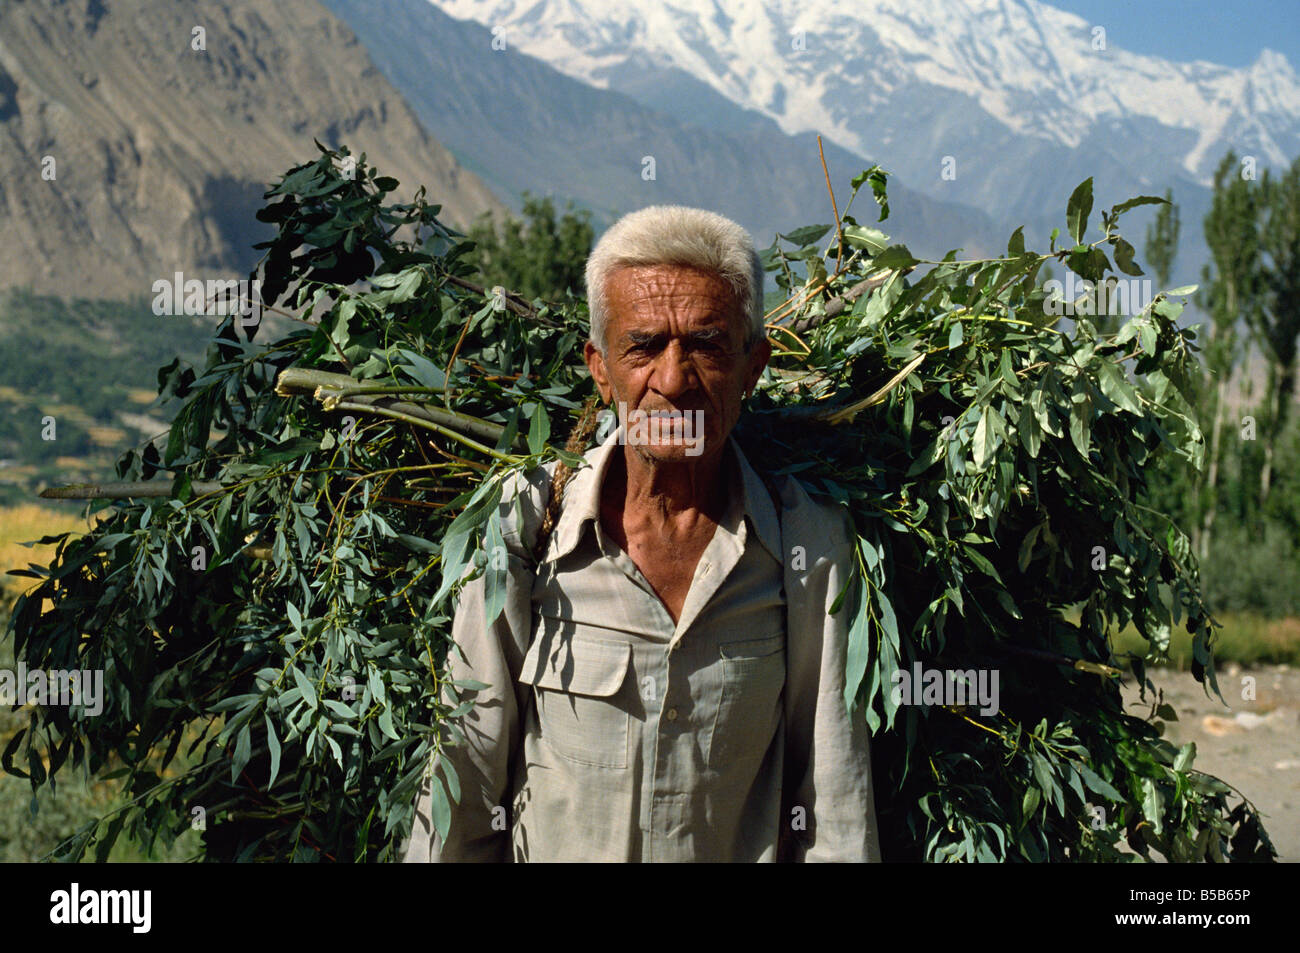 Farmer carrying heavy load, Hunza Valley, Pakistan - Stock Image